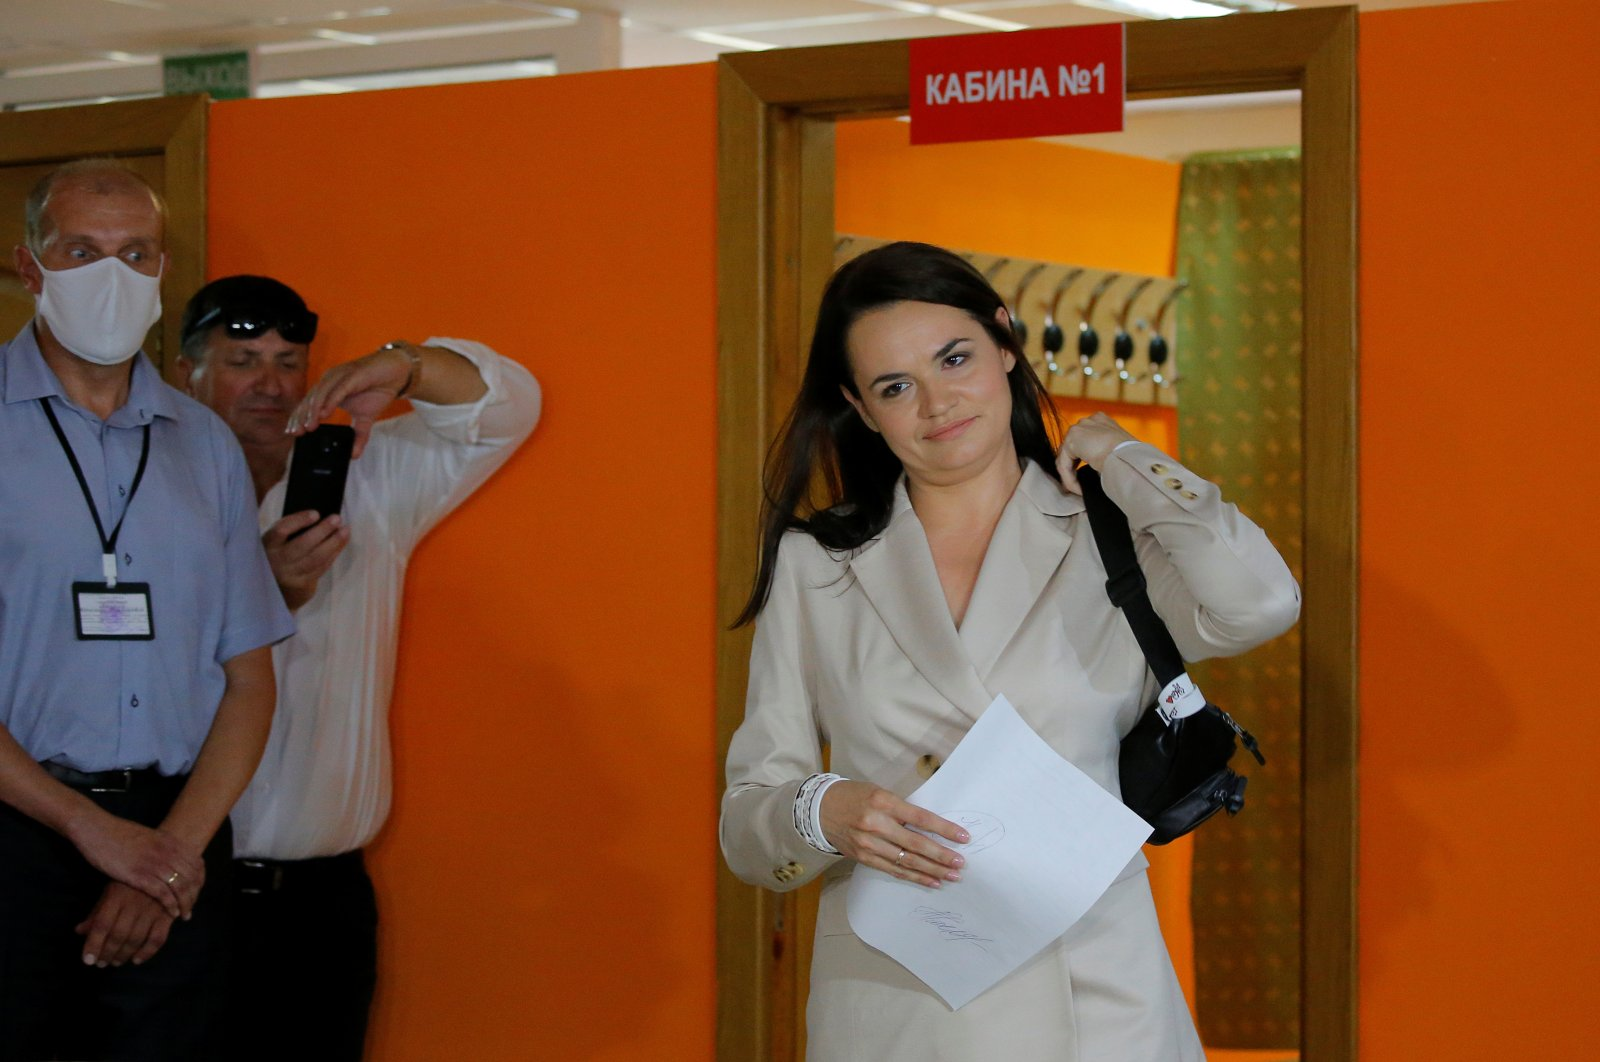 Belarusian united opposition candidate Svetlana Tikhanouskaya walks out of a voting booth before casting her ballot at a polling station during the presidential election in Minsk, Belarus, Aug. 9, 2020. (Reuters Photo)